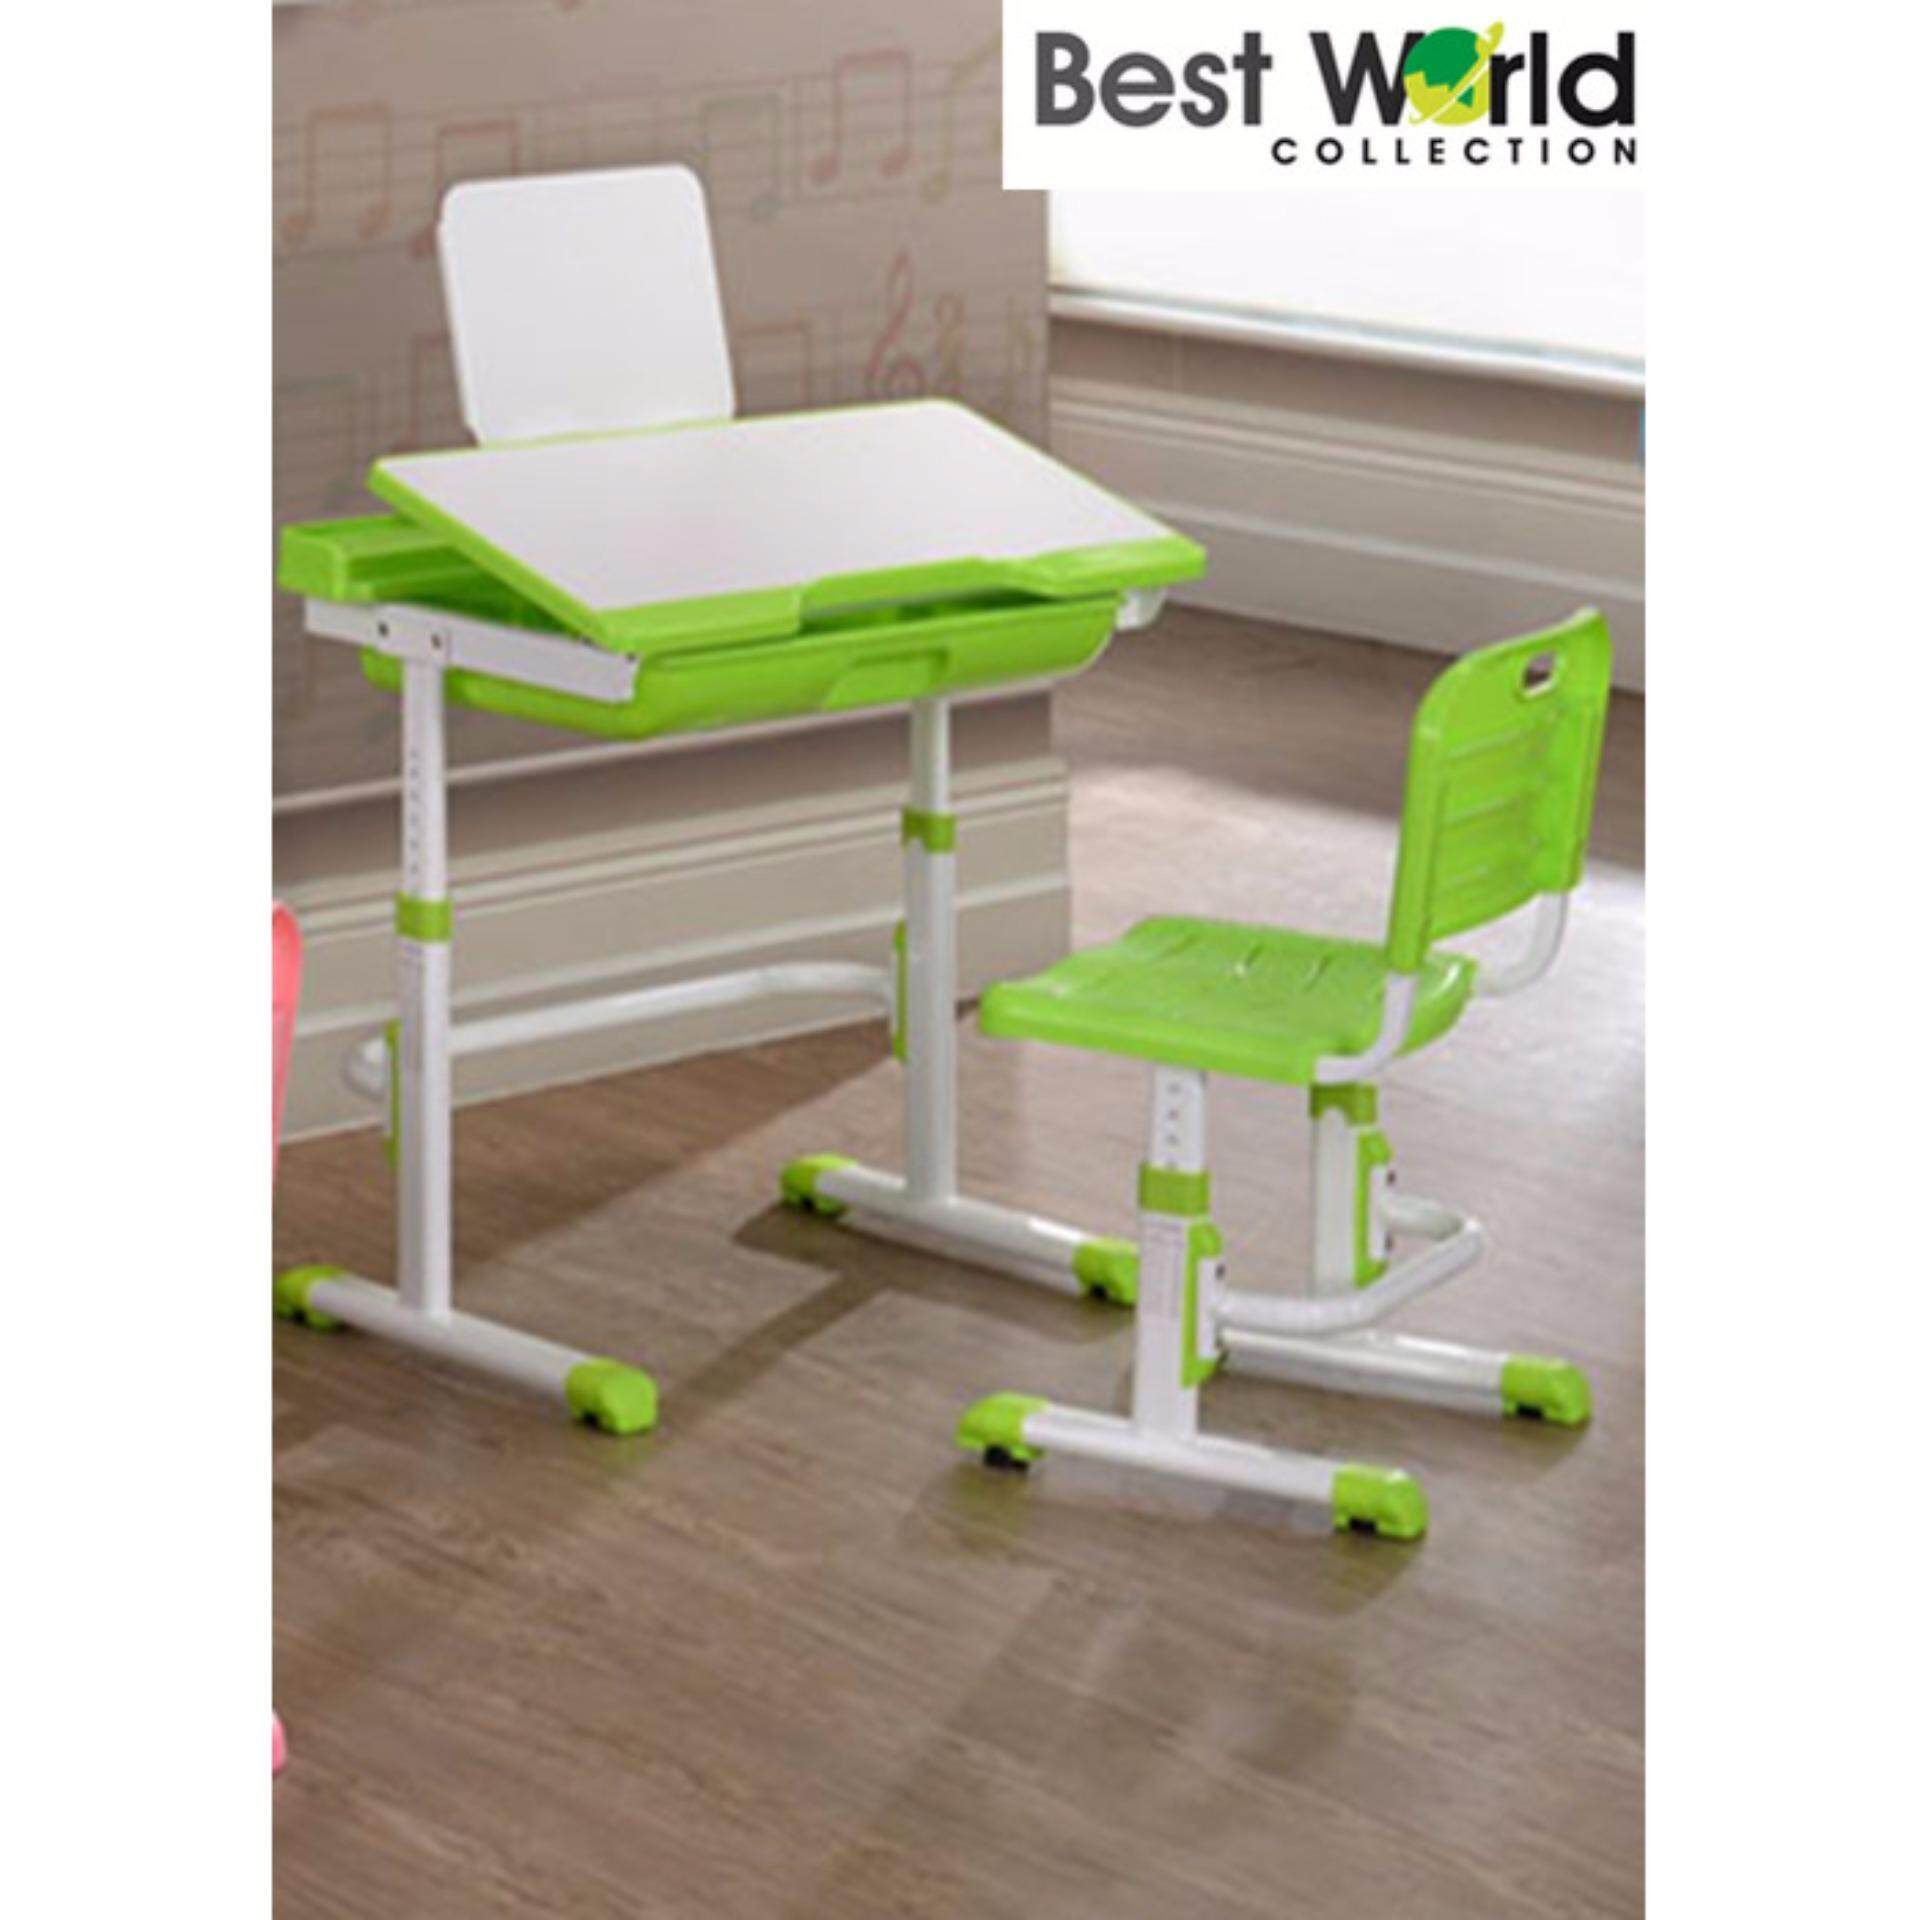 Best Adjule Study Desk With Chair Green Malaysia